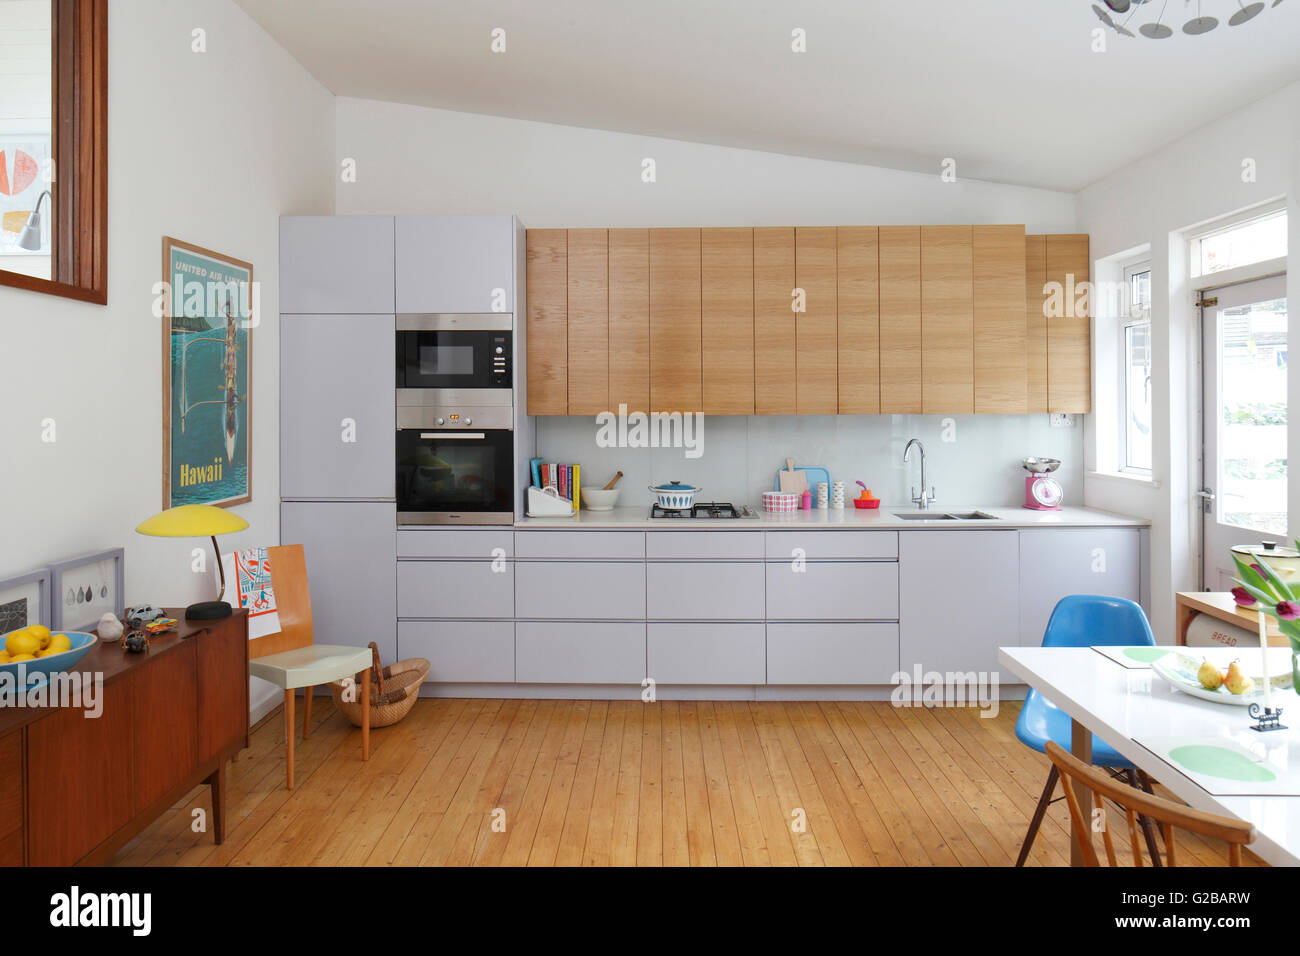 Kitchen With Sloping Ceiling White And Wood Kitchen Cabinets Stock Photo Alamy